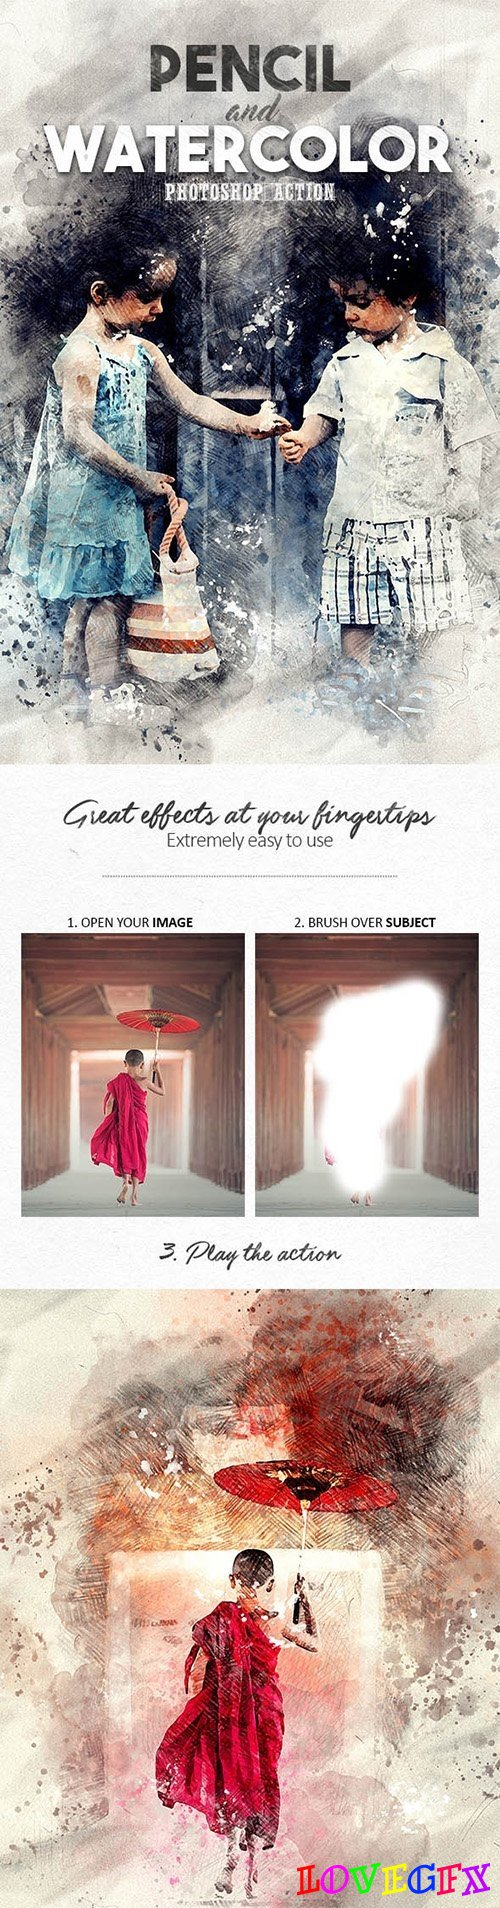 Pencil n Watercolor Photoshop Action - 19586973